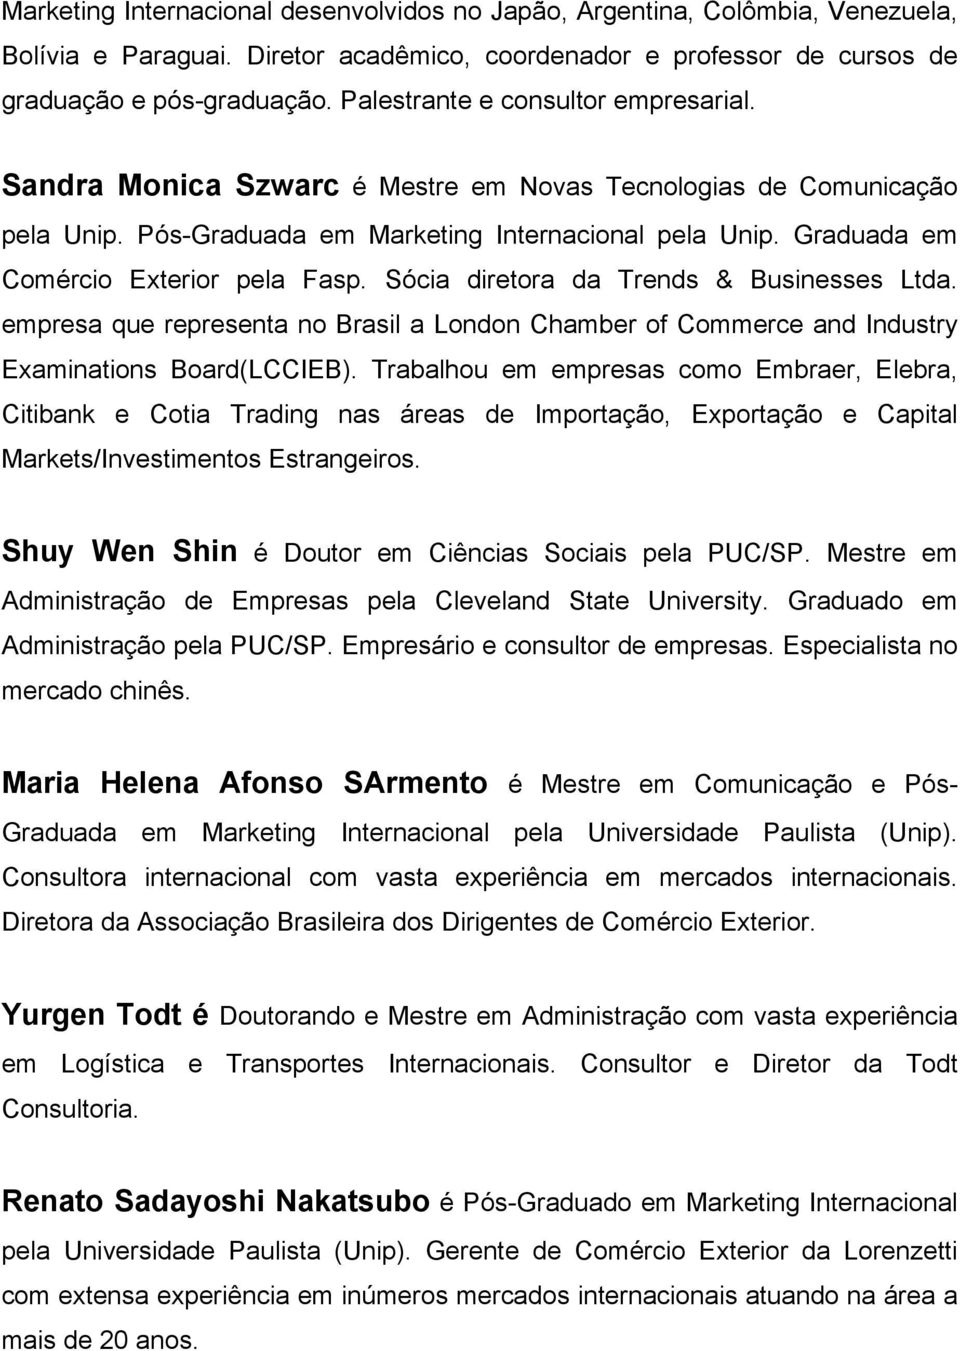 Graduada em Comércio Exterior pela Fasp. Sócia diretora da Trends & Businesses Ltda. empresa que representa no Brasil a London Chamber of Commerce and Industry Examinations Board(LCCIEB).